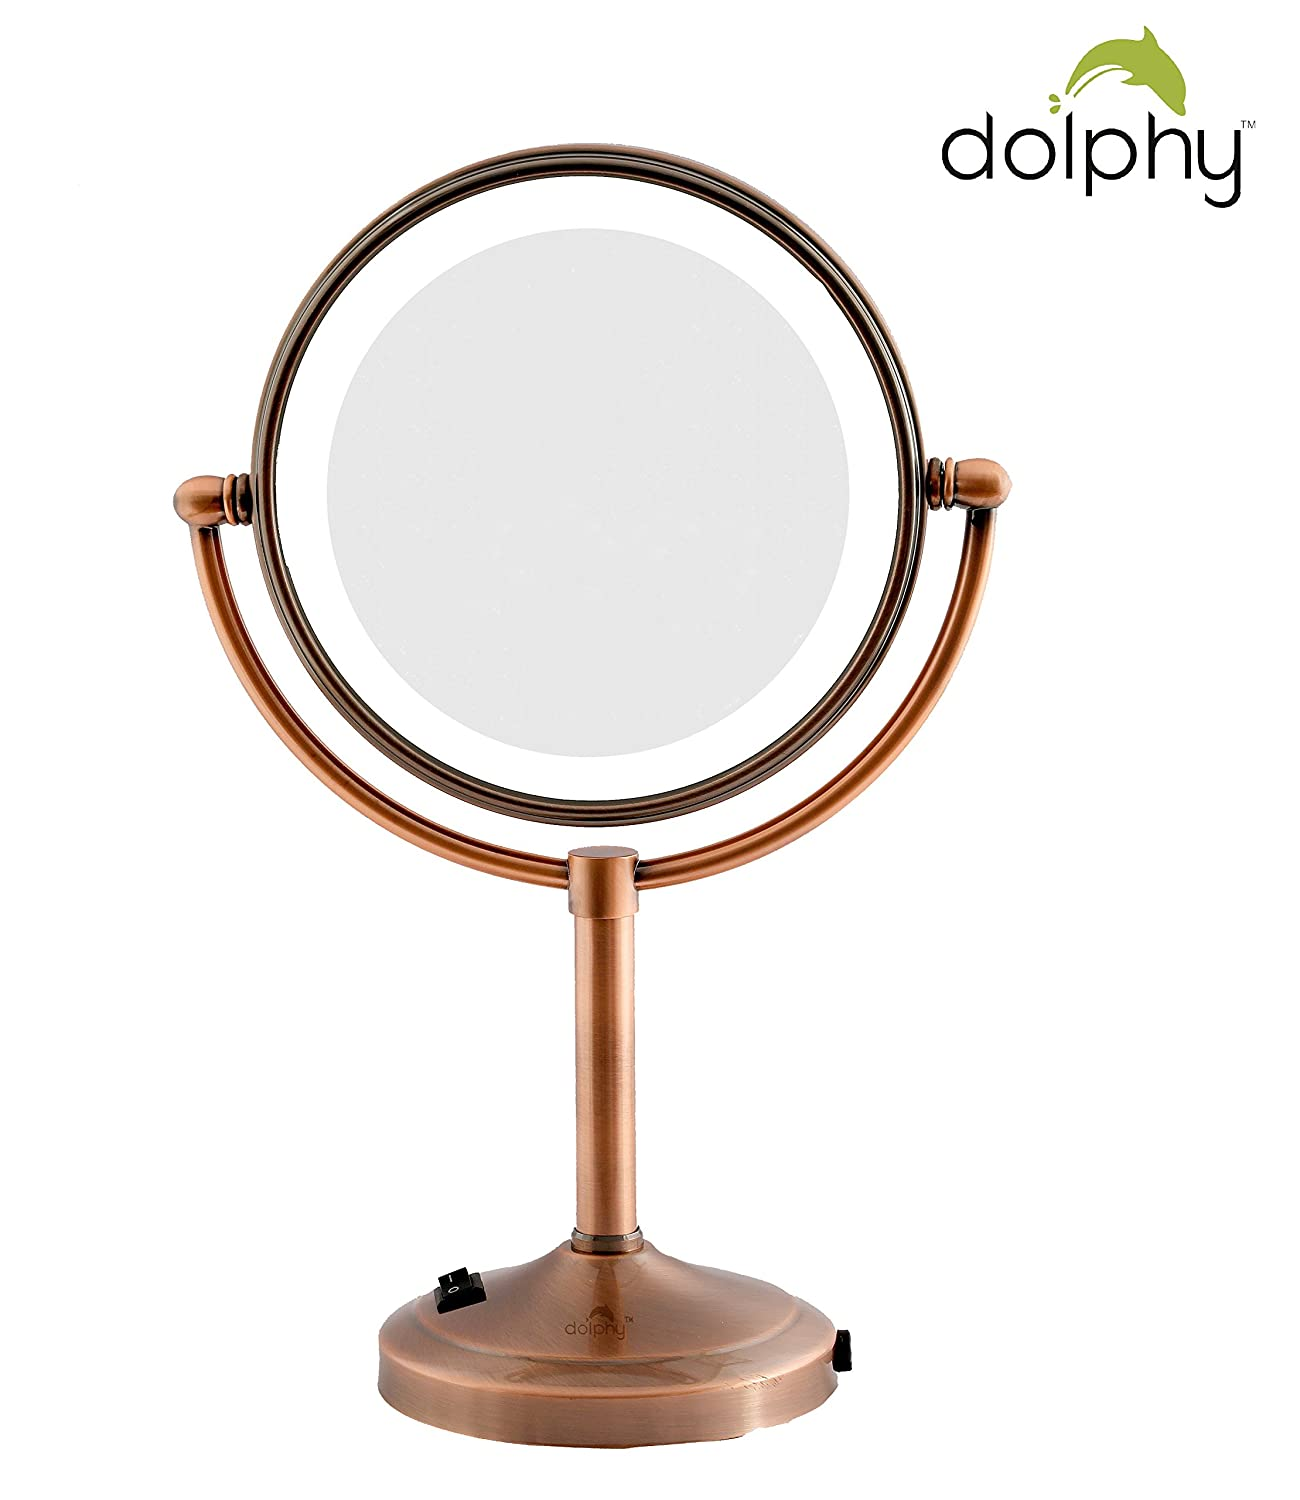 Dolphy Copper 5x LED Tabletop Shaving & Makeup Vanity - 8 Inch Magnifying Mirror